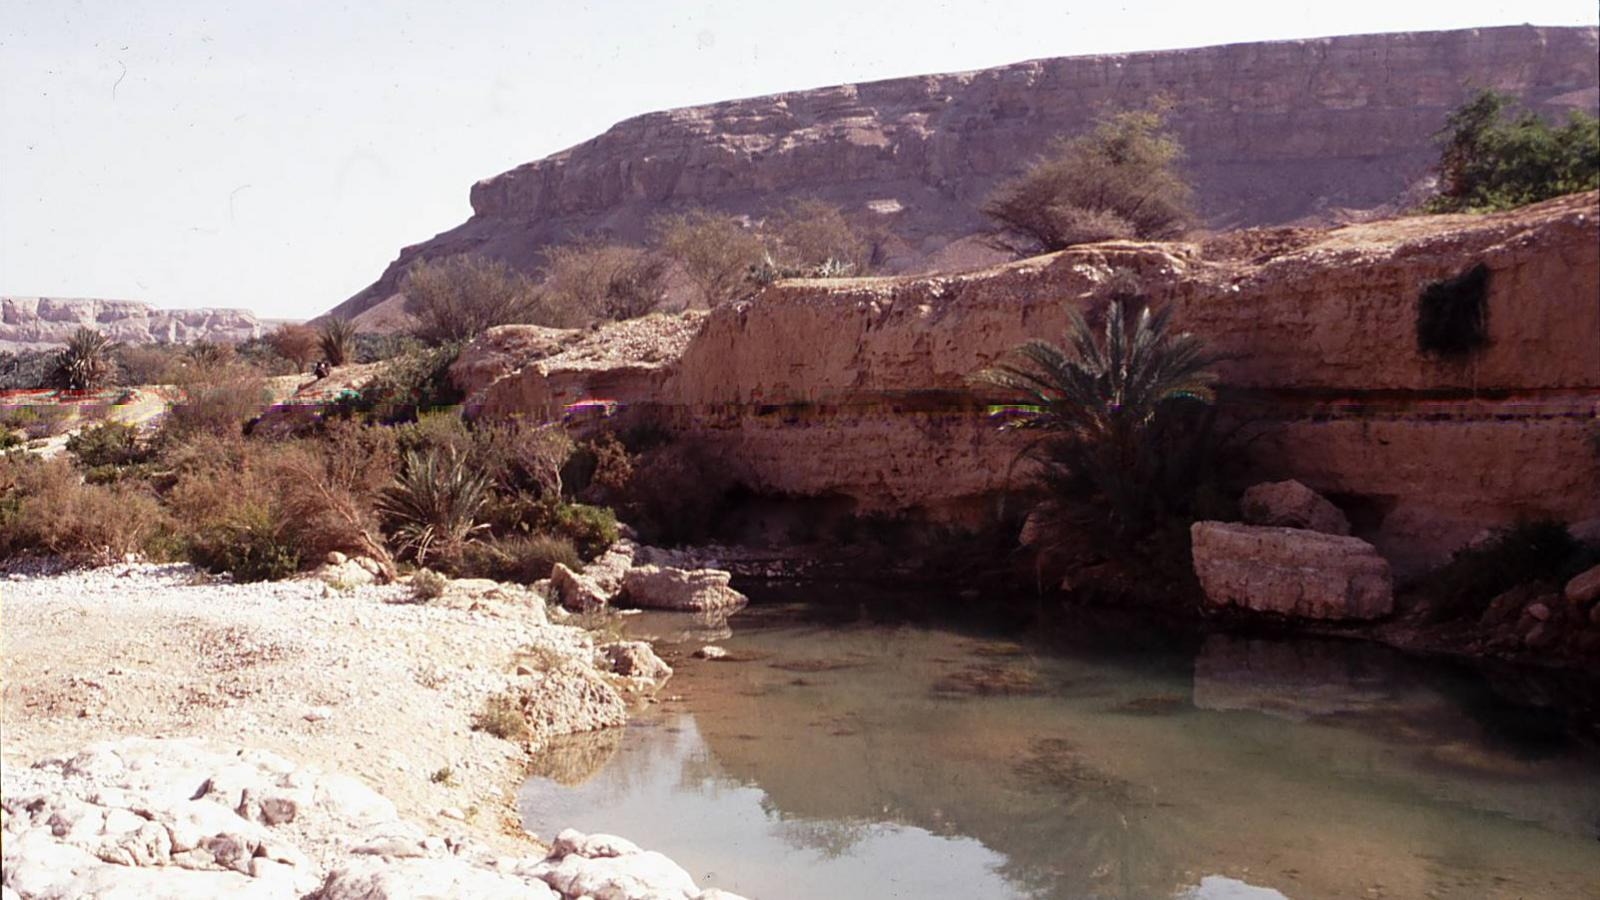 Water pool in the desert